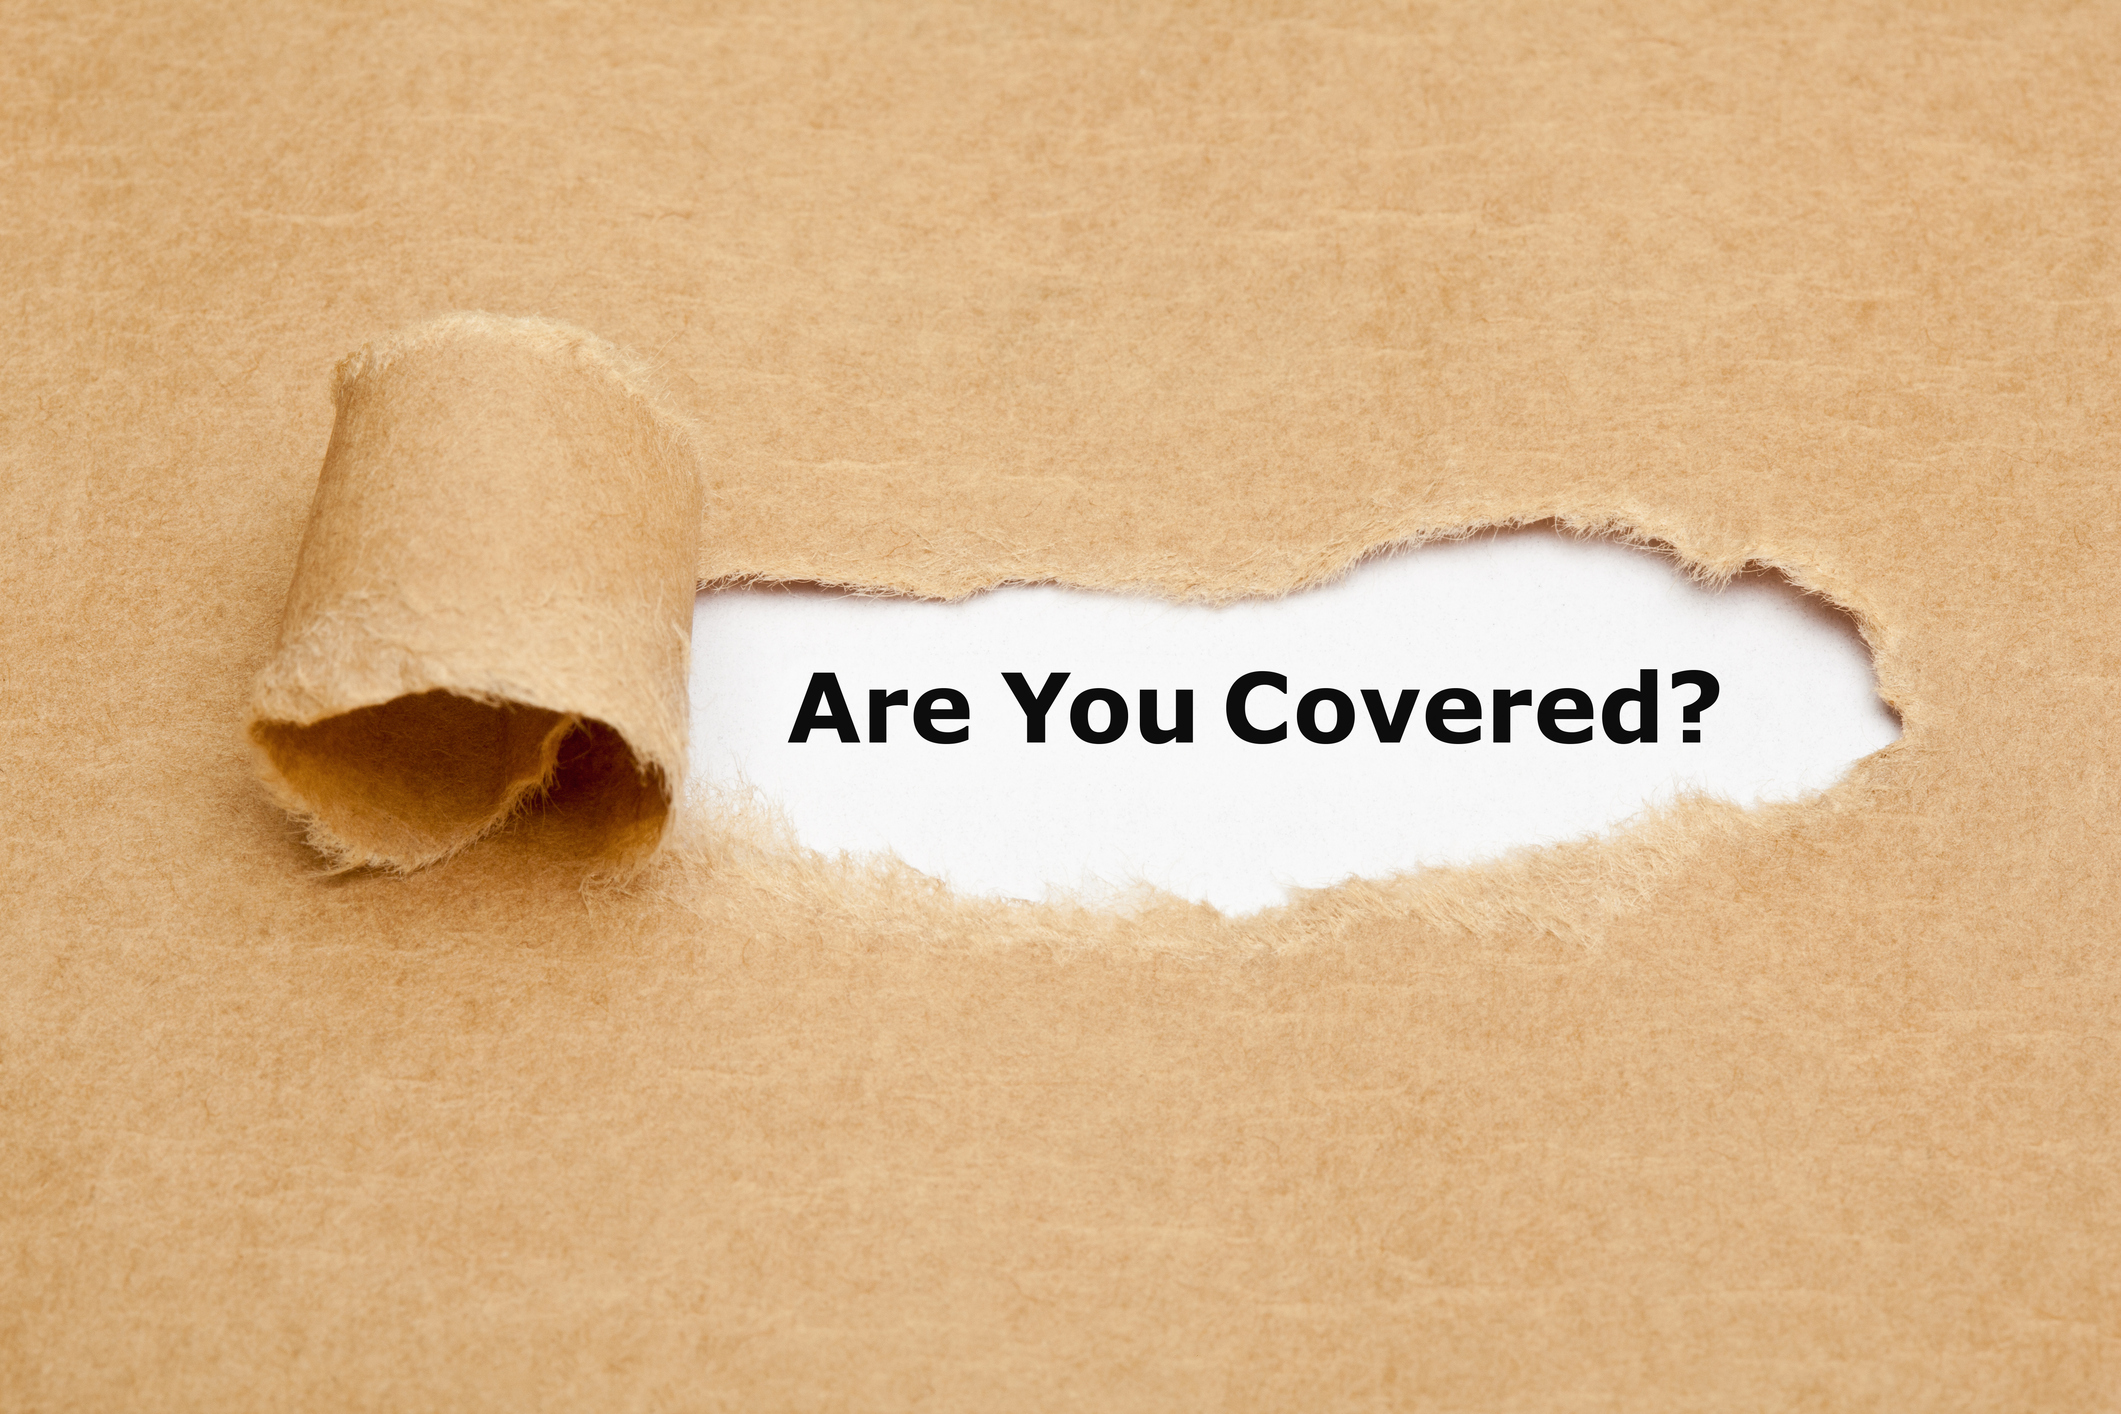 Does Your Business Need Product Liability Insurance?on avanteinsurance.com